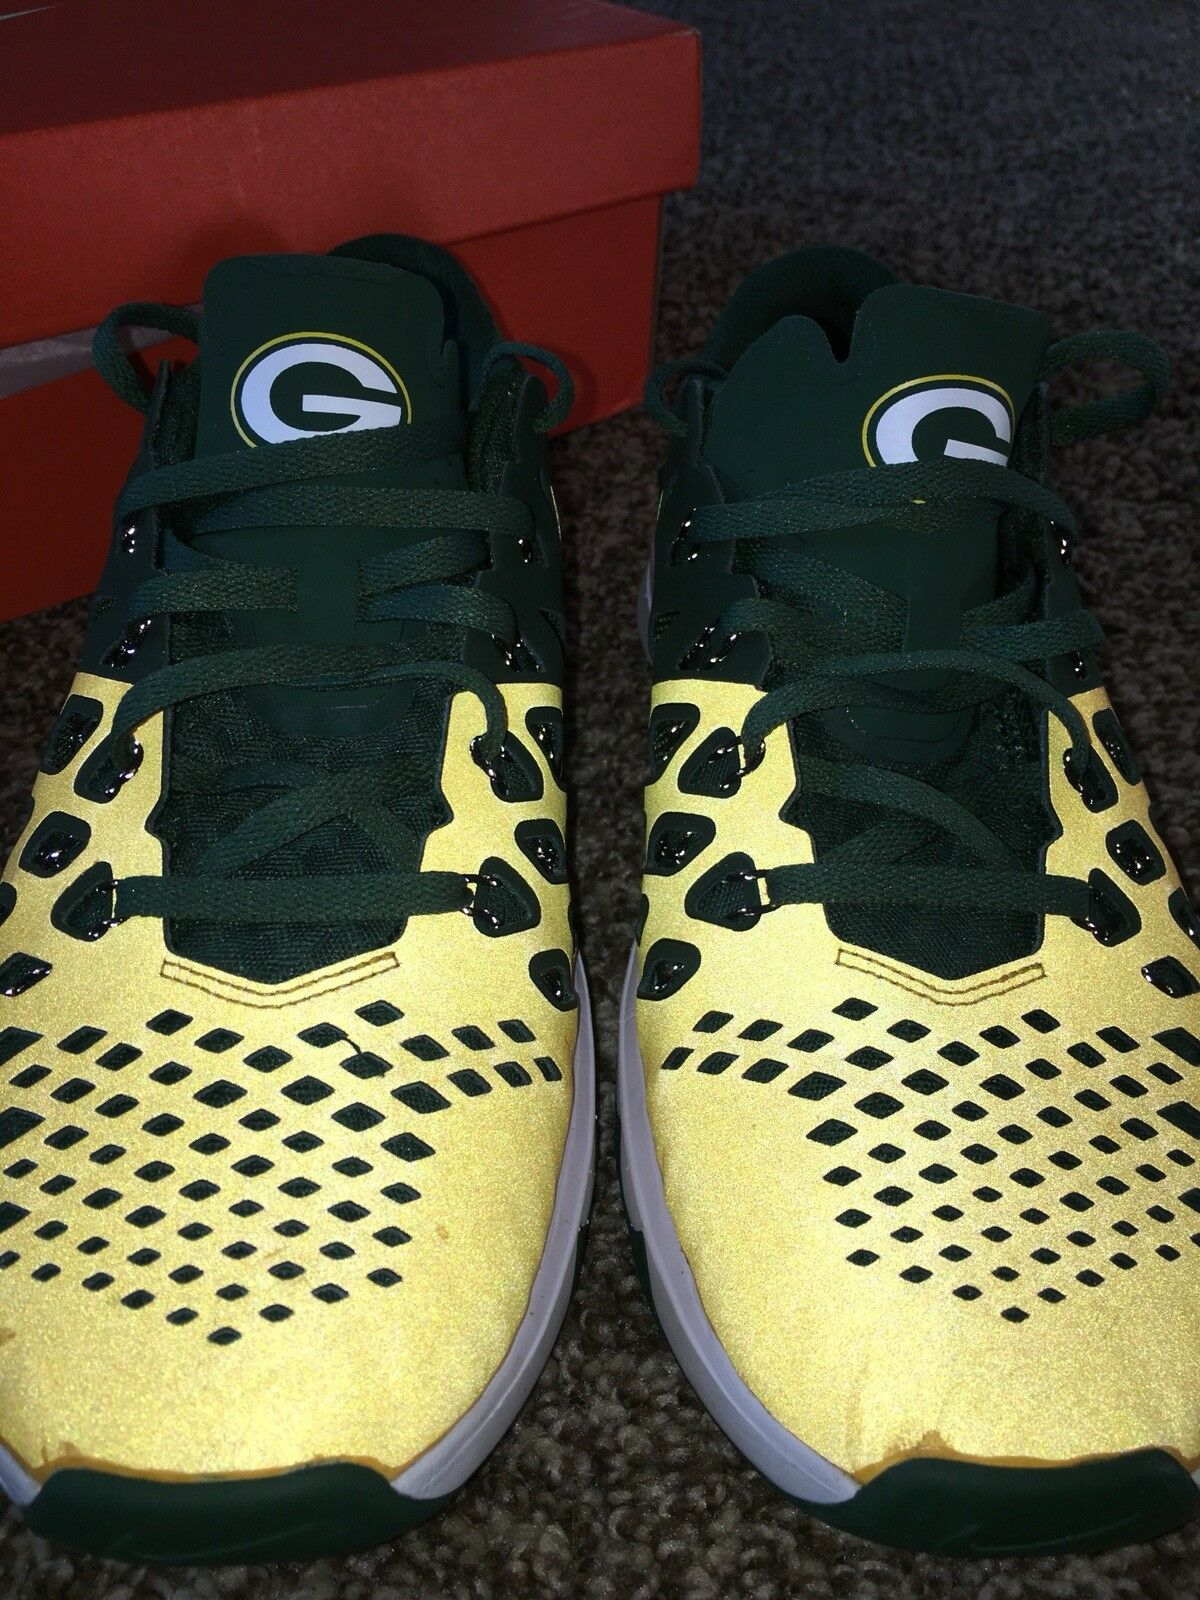 Nike treno velocit 4 packers.il amp nfl green bay packers.il 4 vero packer fan. eda28c